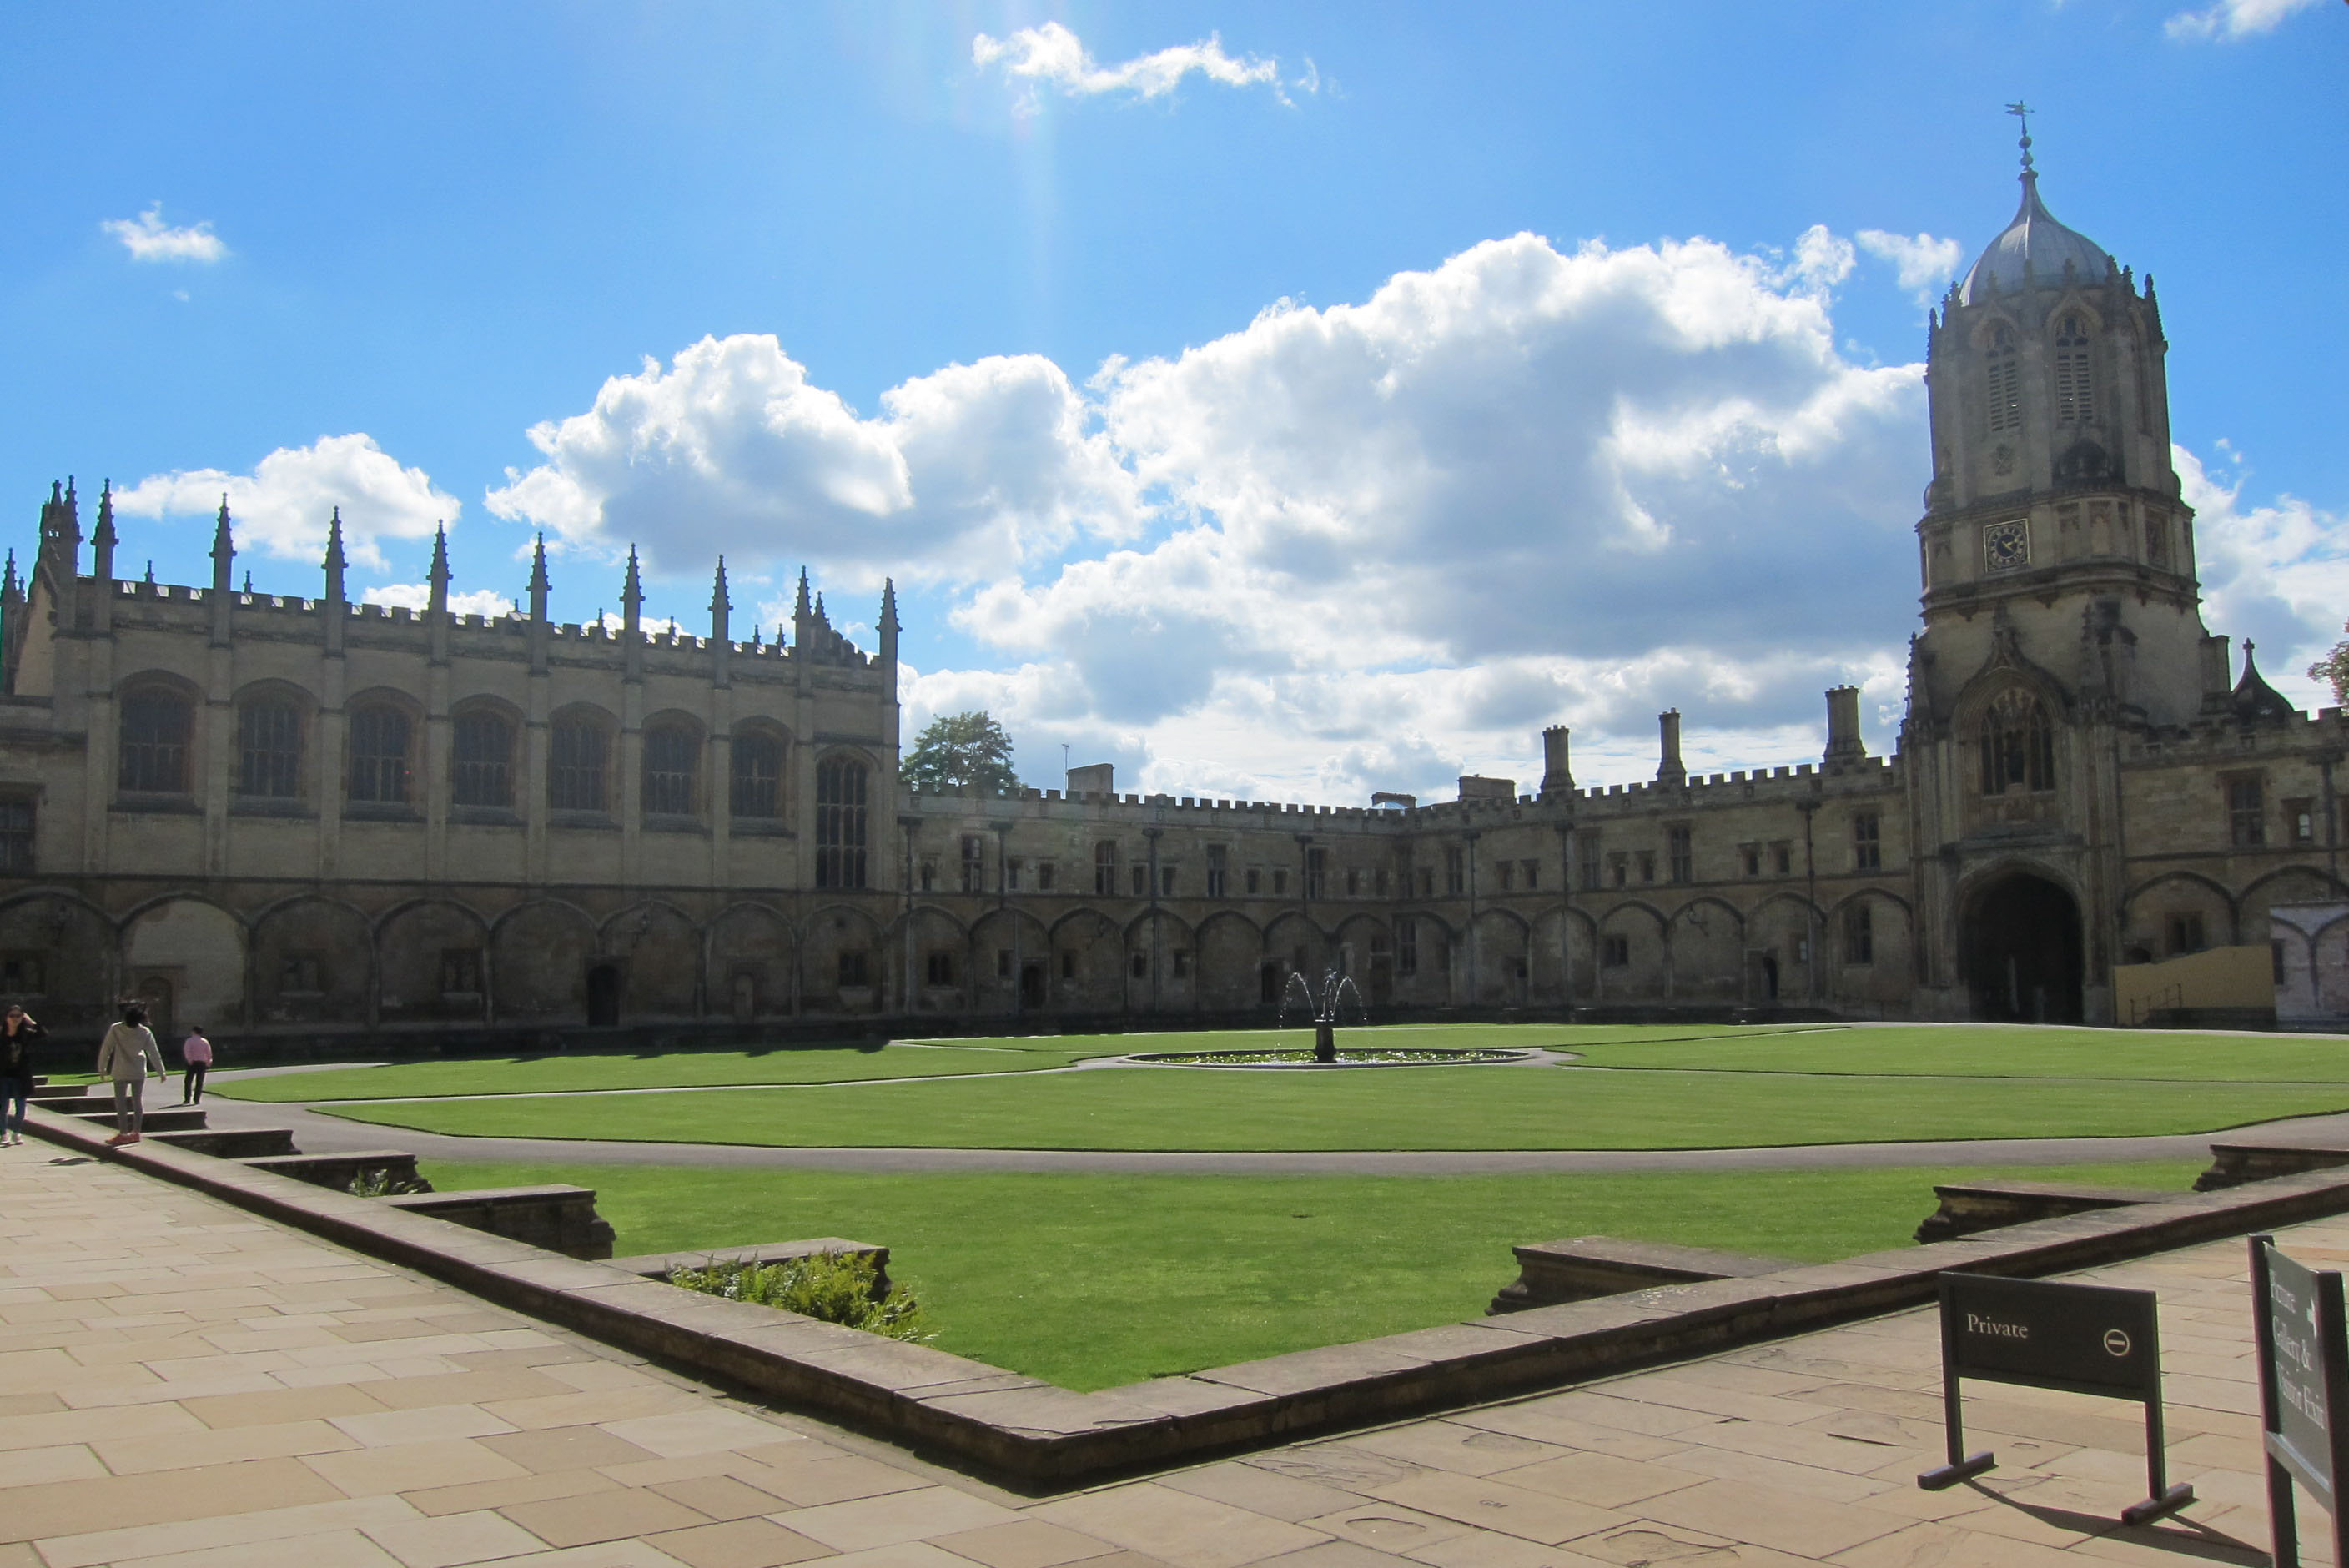 Christ Church buildings as seen from Tom Quad